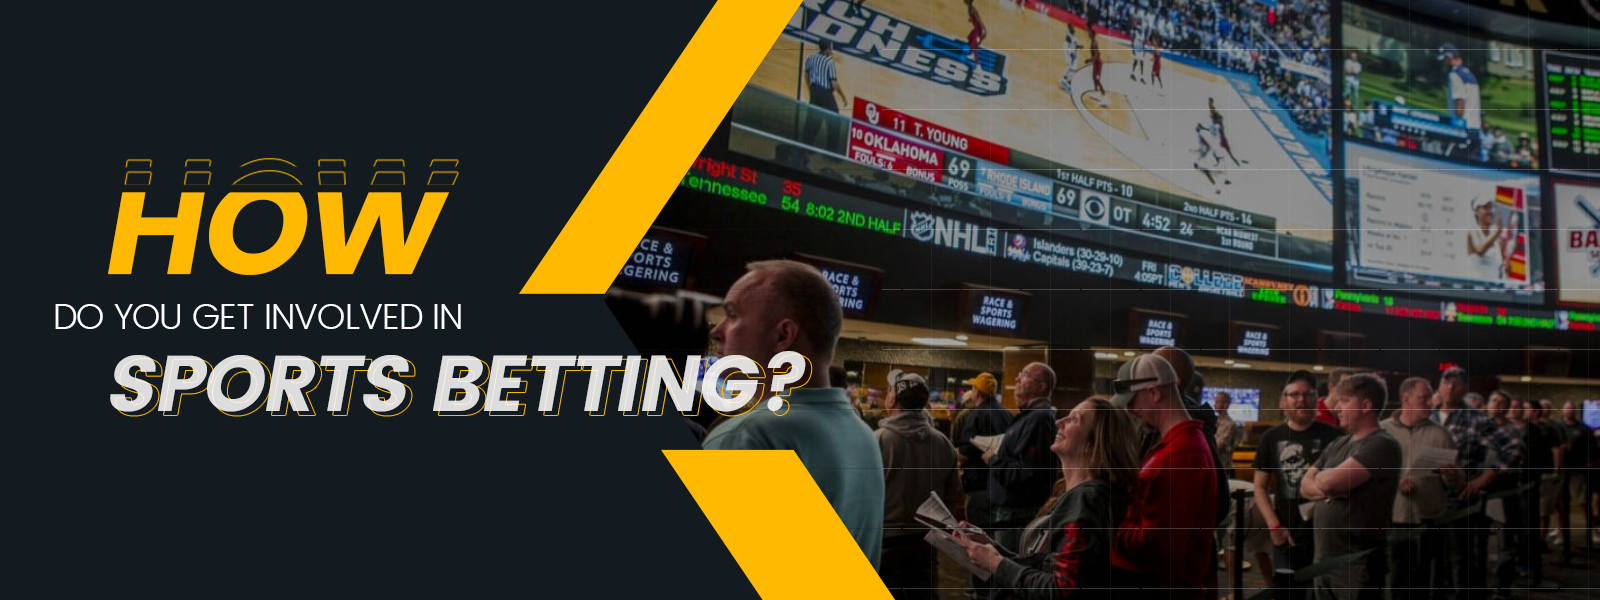 How Do You Get Involved In Sports Betting?